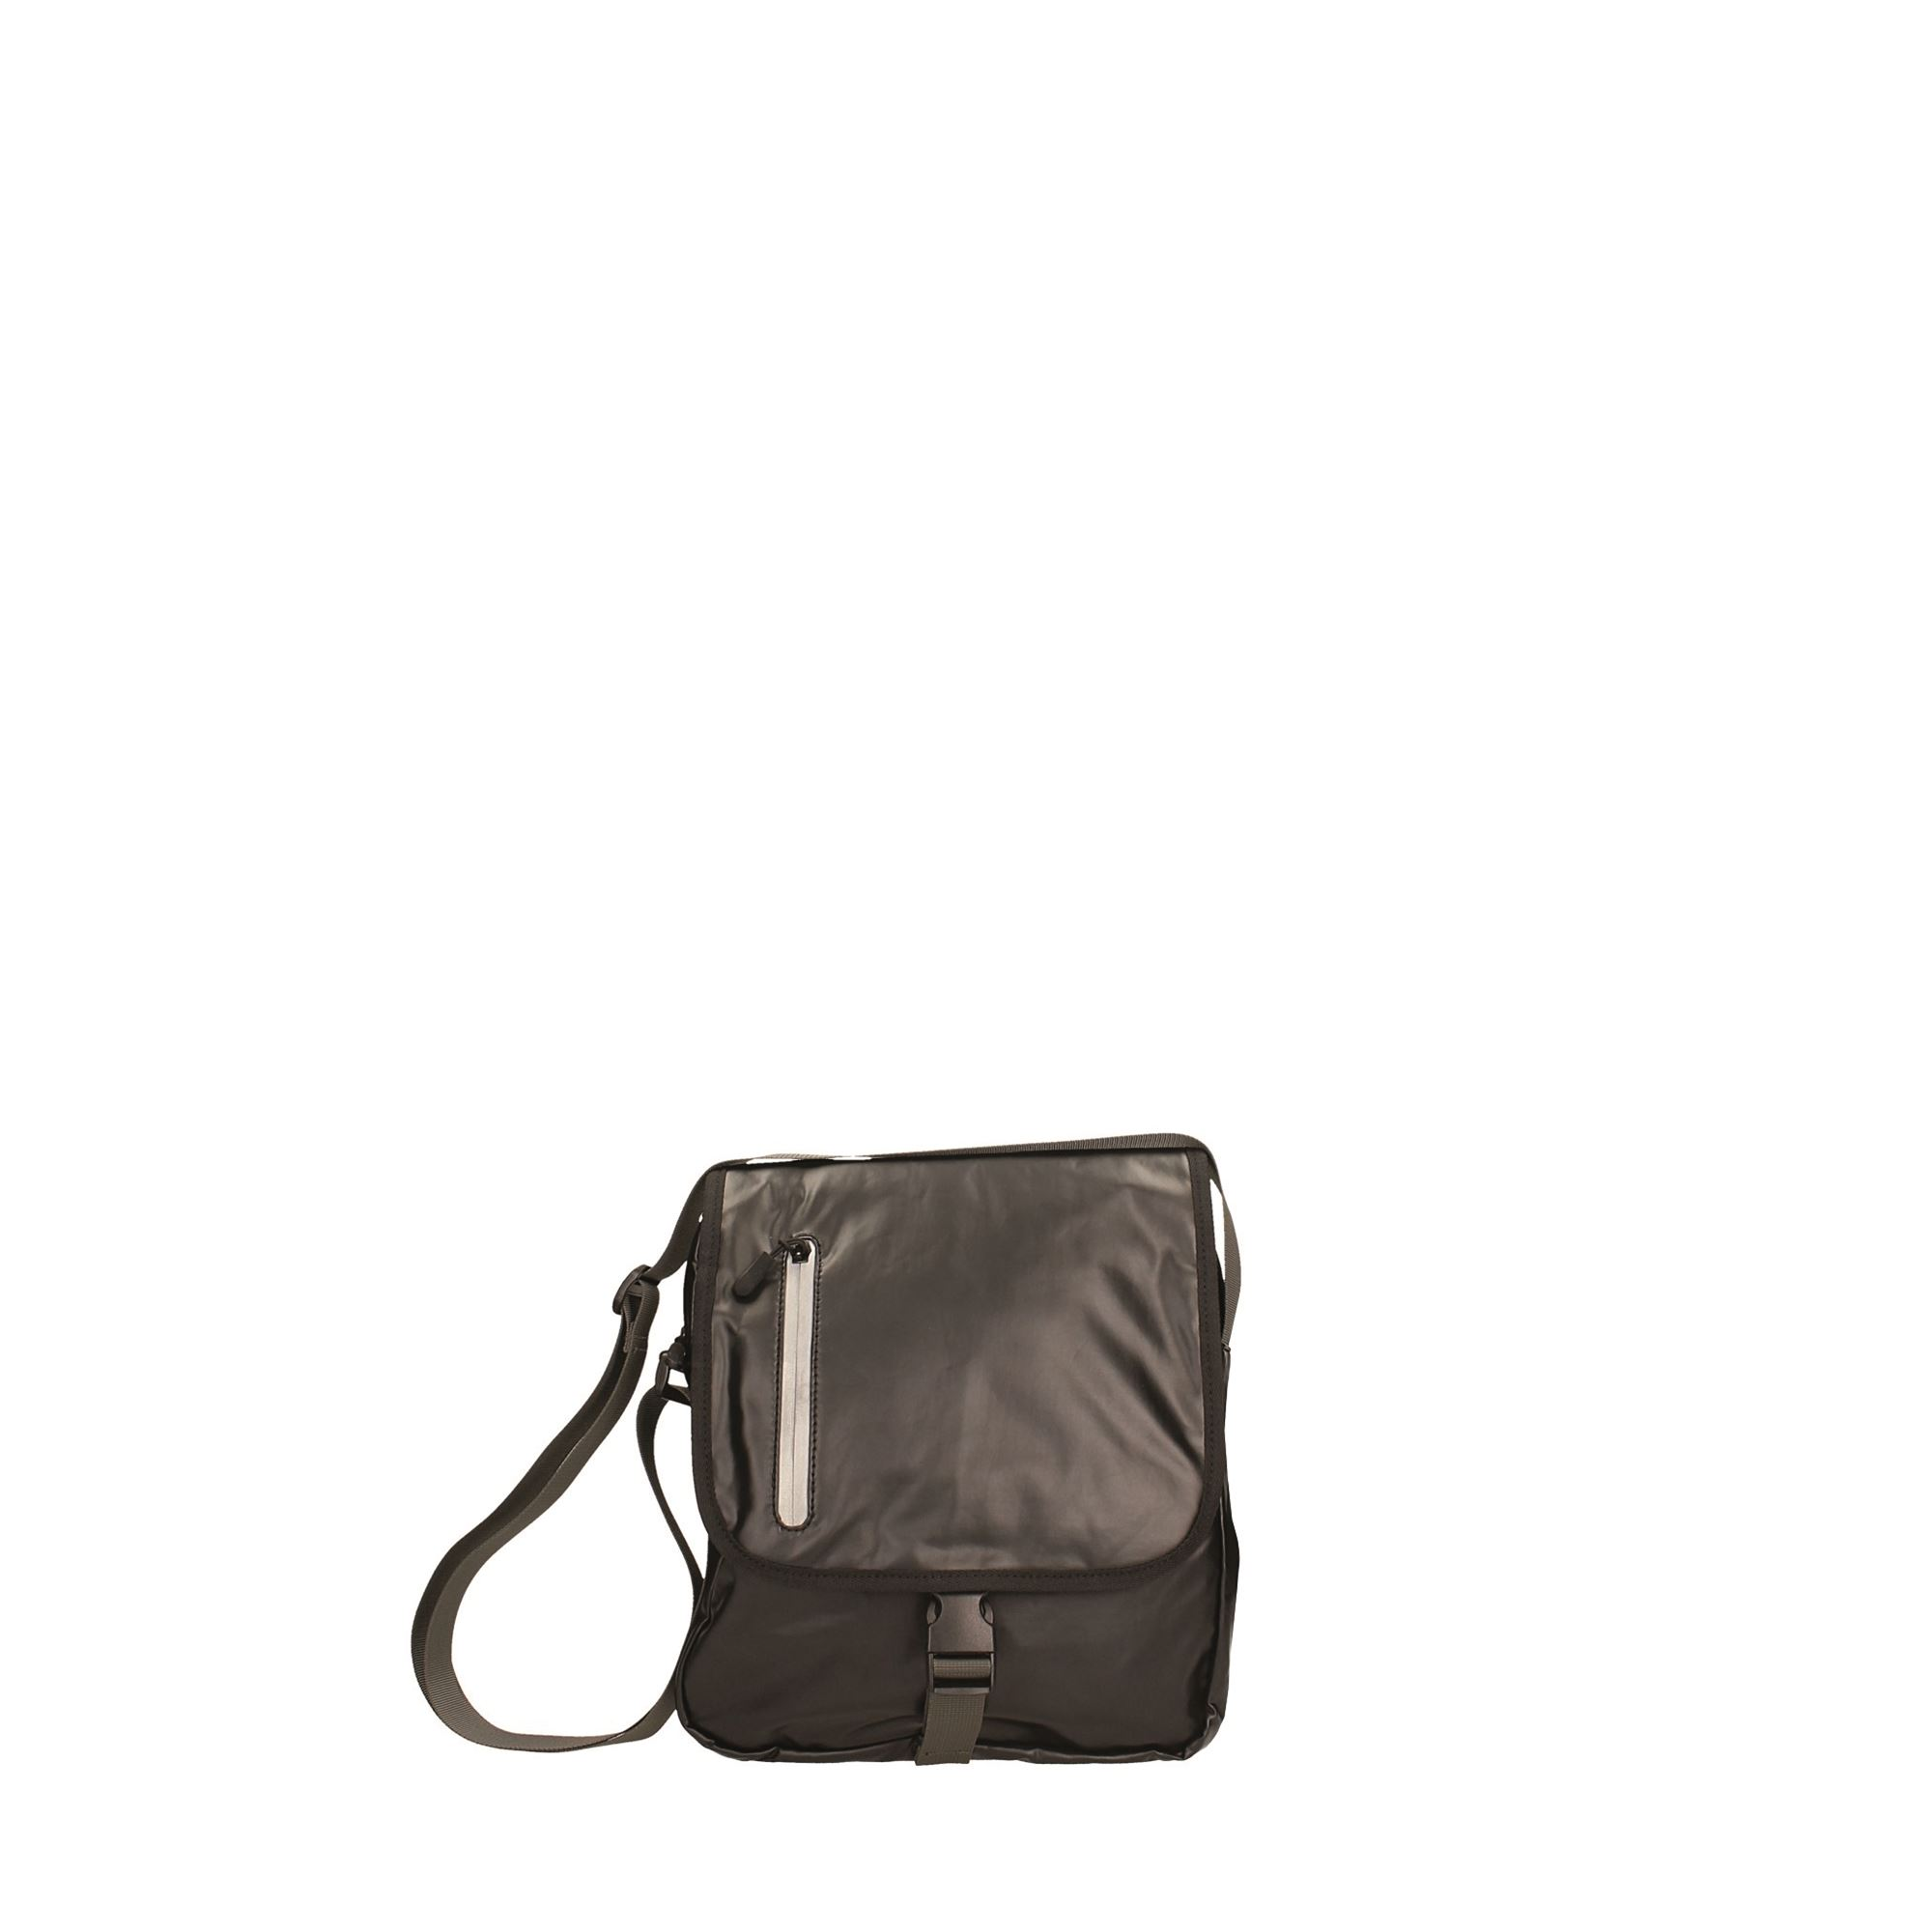 Tata Italia Accessories Man Bags Black SK591